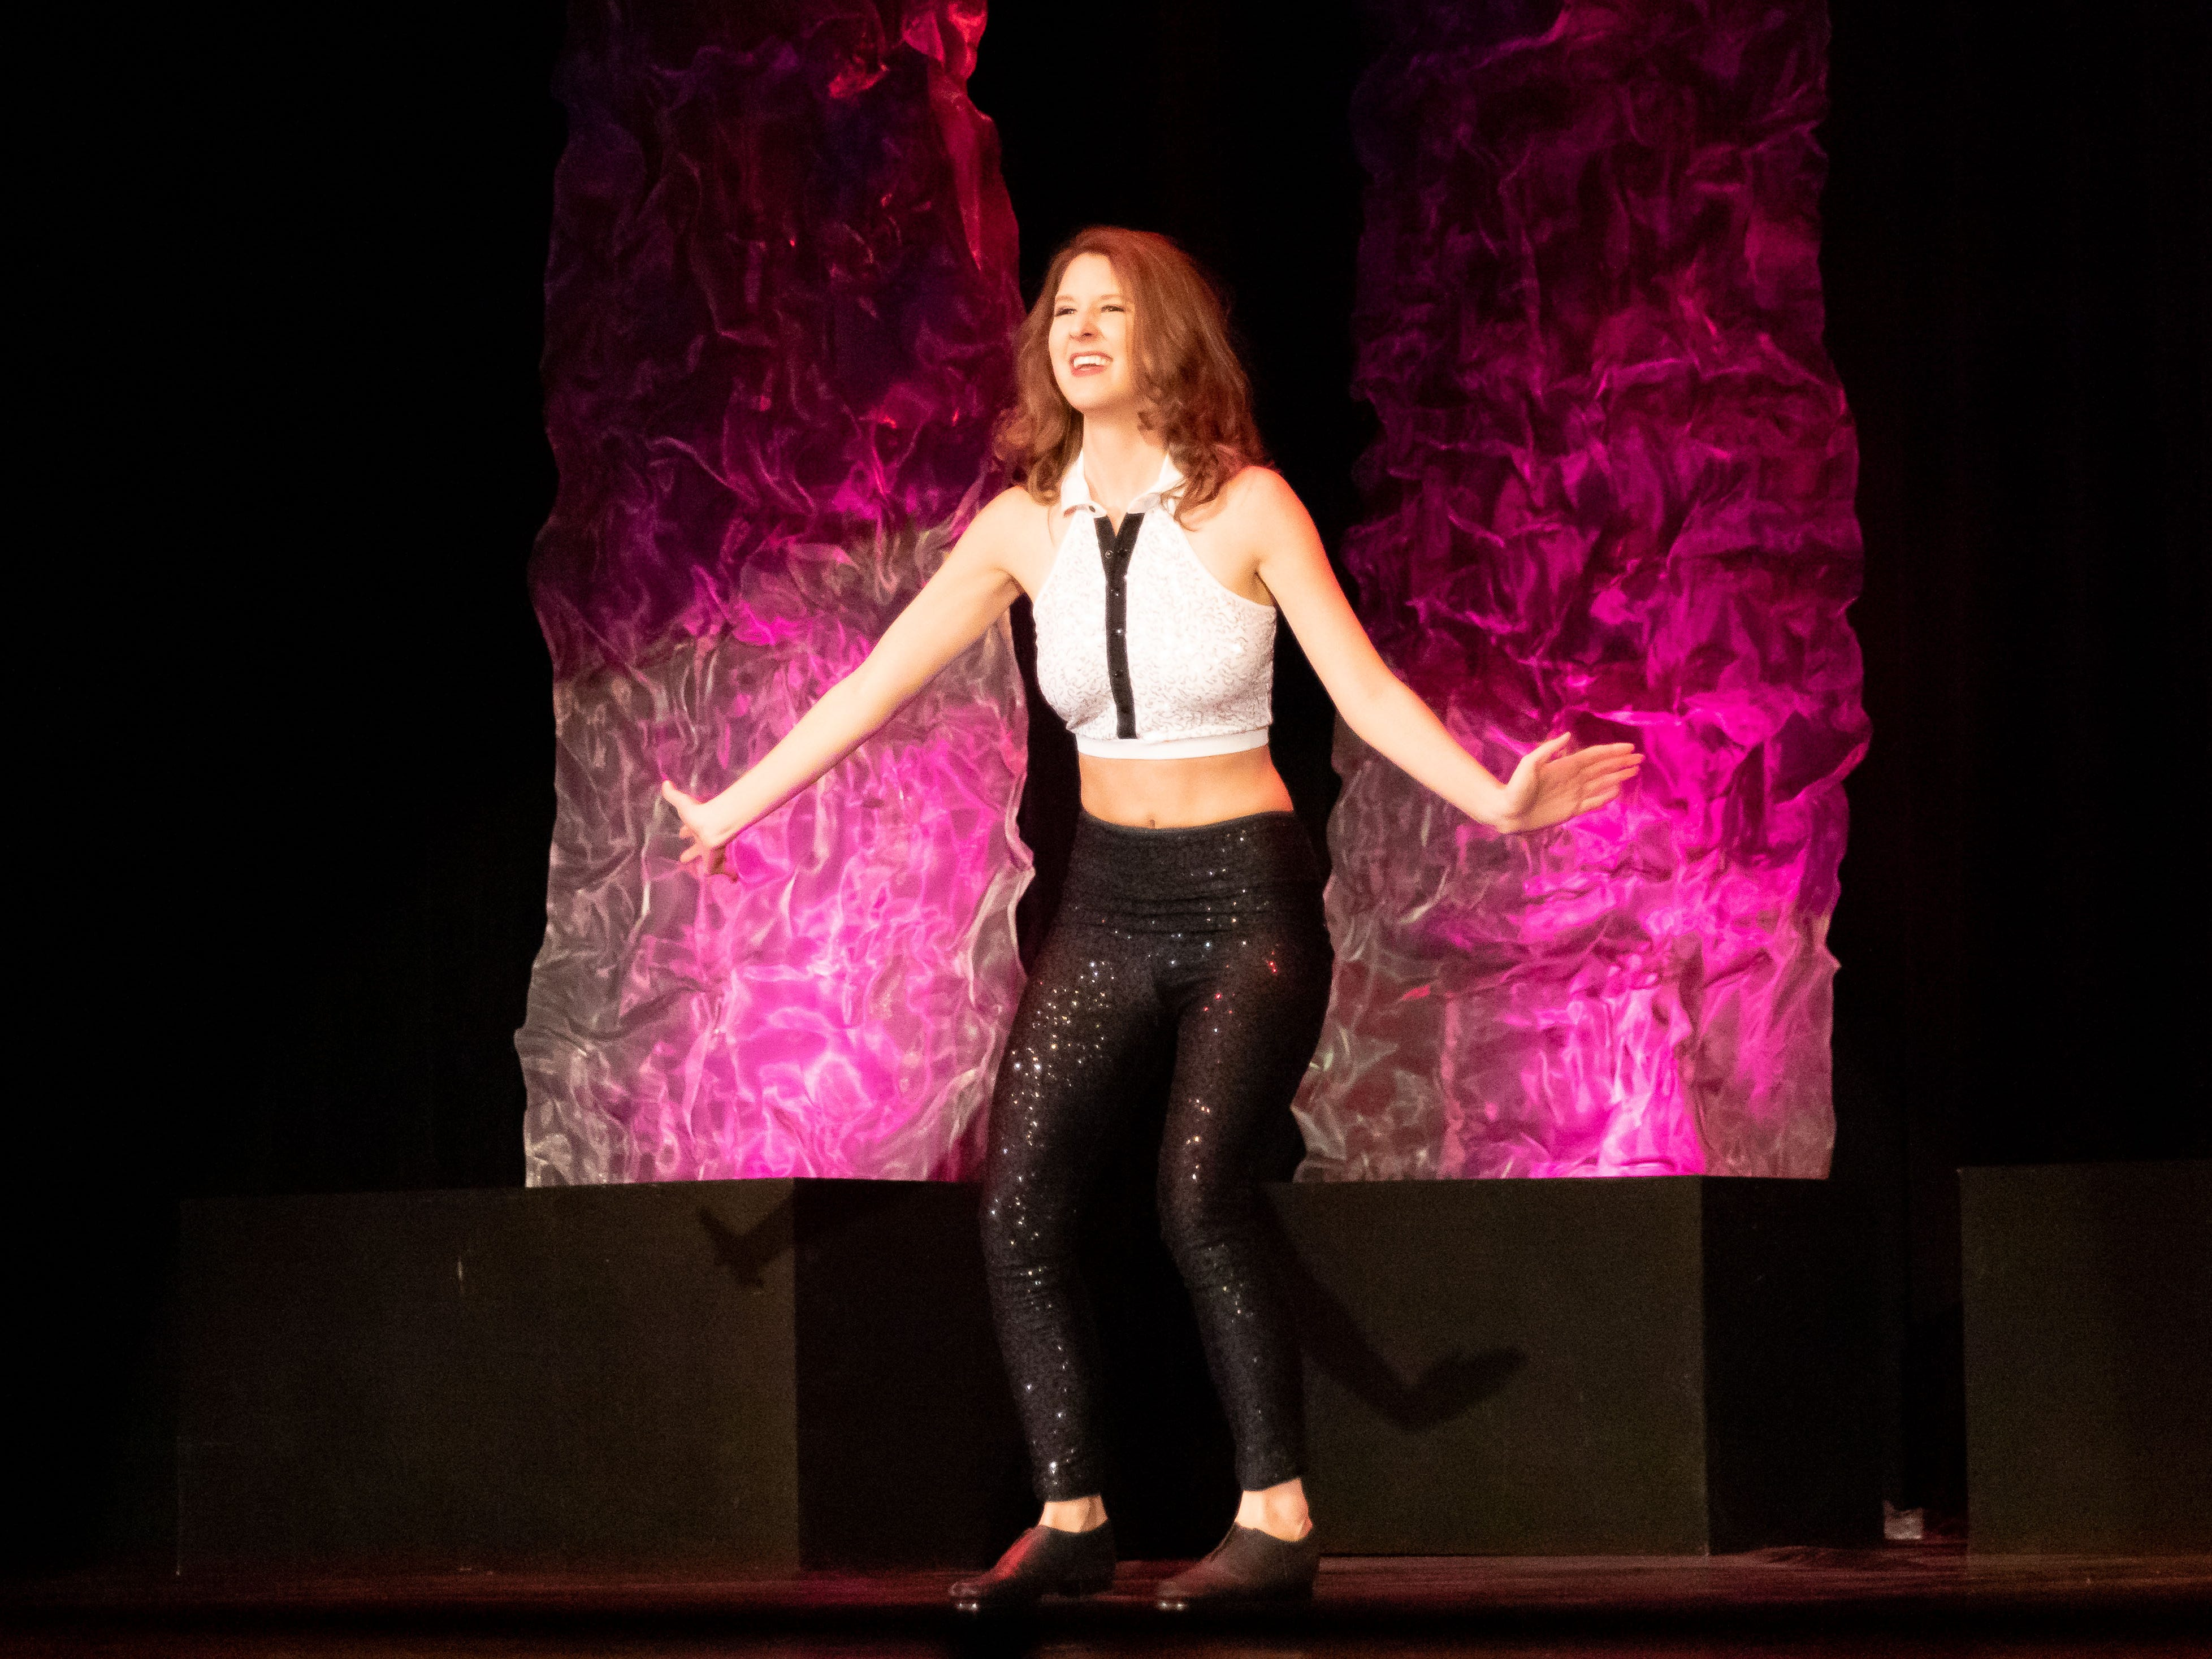 Miss Wisconsin Rapids Area 2018 Hannah Ashbeck performs during the 2019 Miss Wisconsin Rapids Area Scholarship Pageant on Saturday, Oct. 27, 2018, at the Performing Arts Center of Wisconsin Rapids.